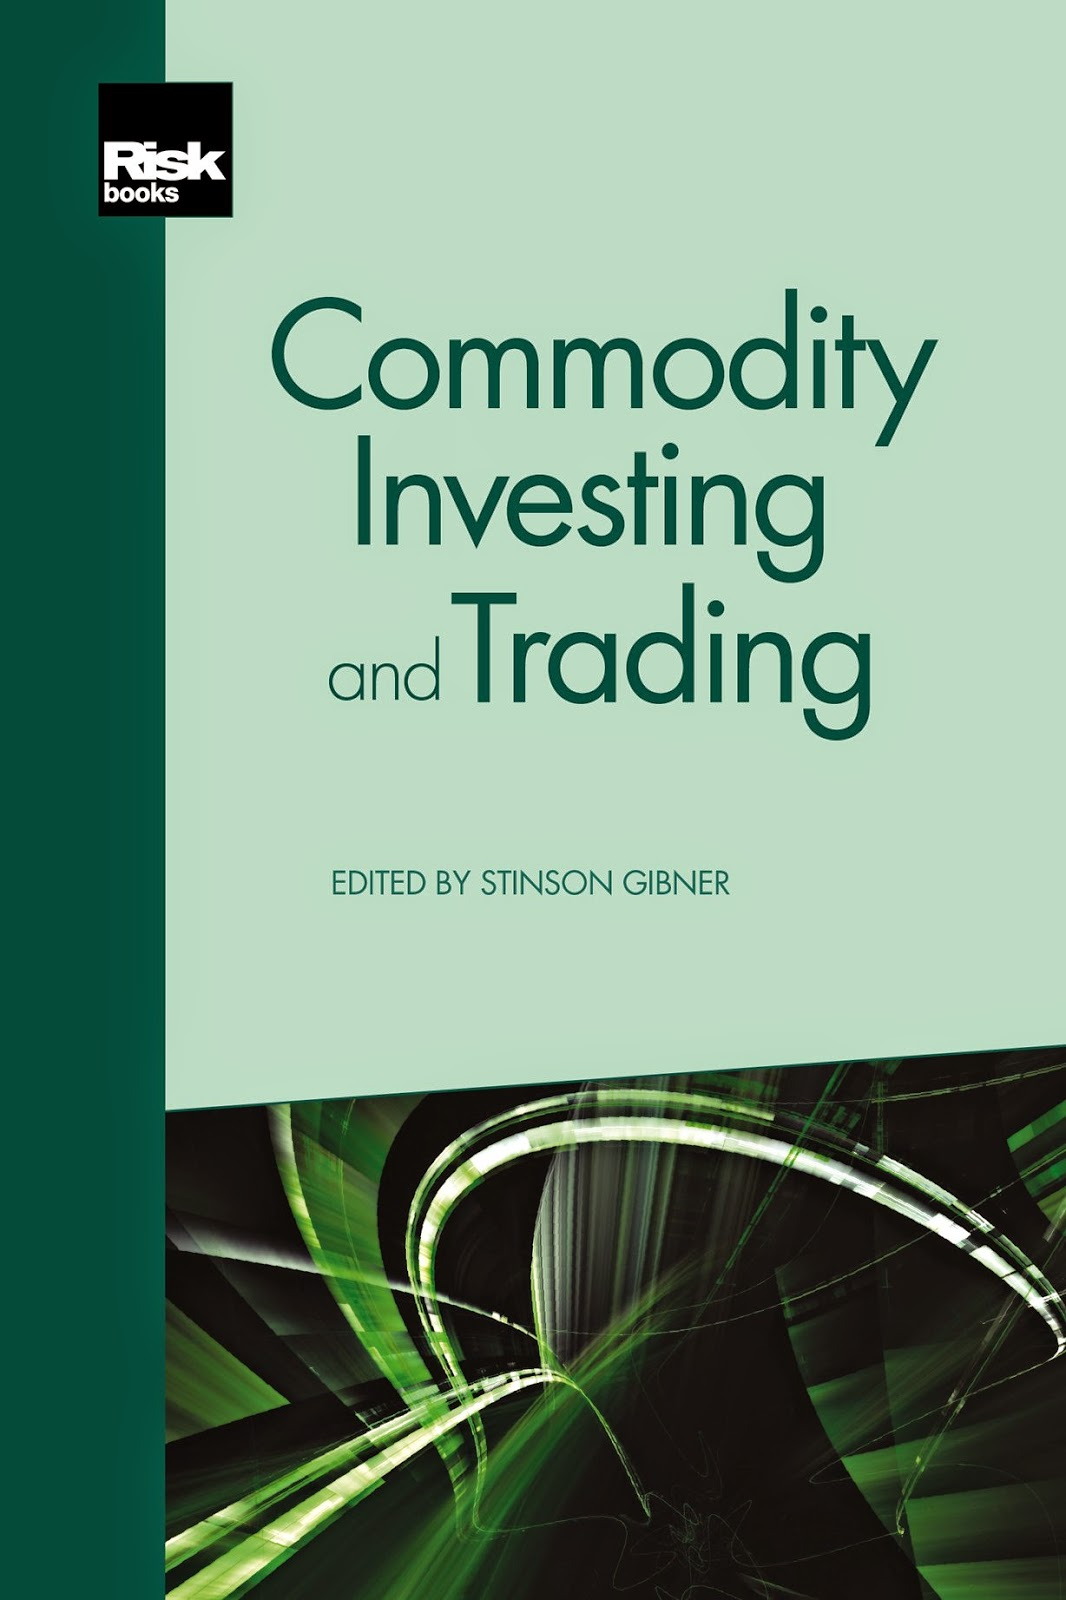 http://www.kingcheapebooks.com/2014/10/commodity-investing-and-trading.html